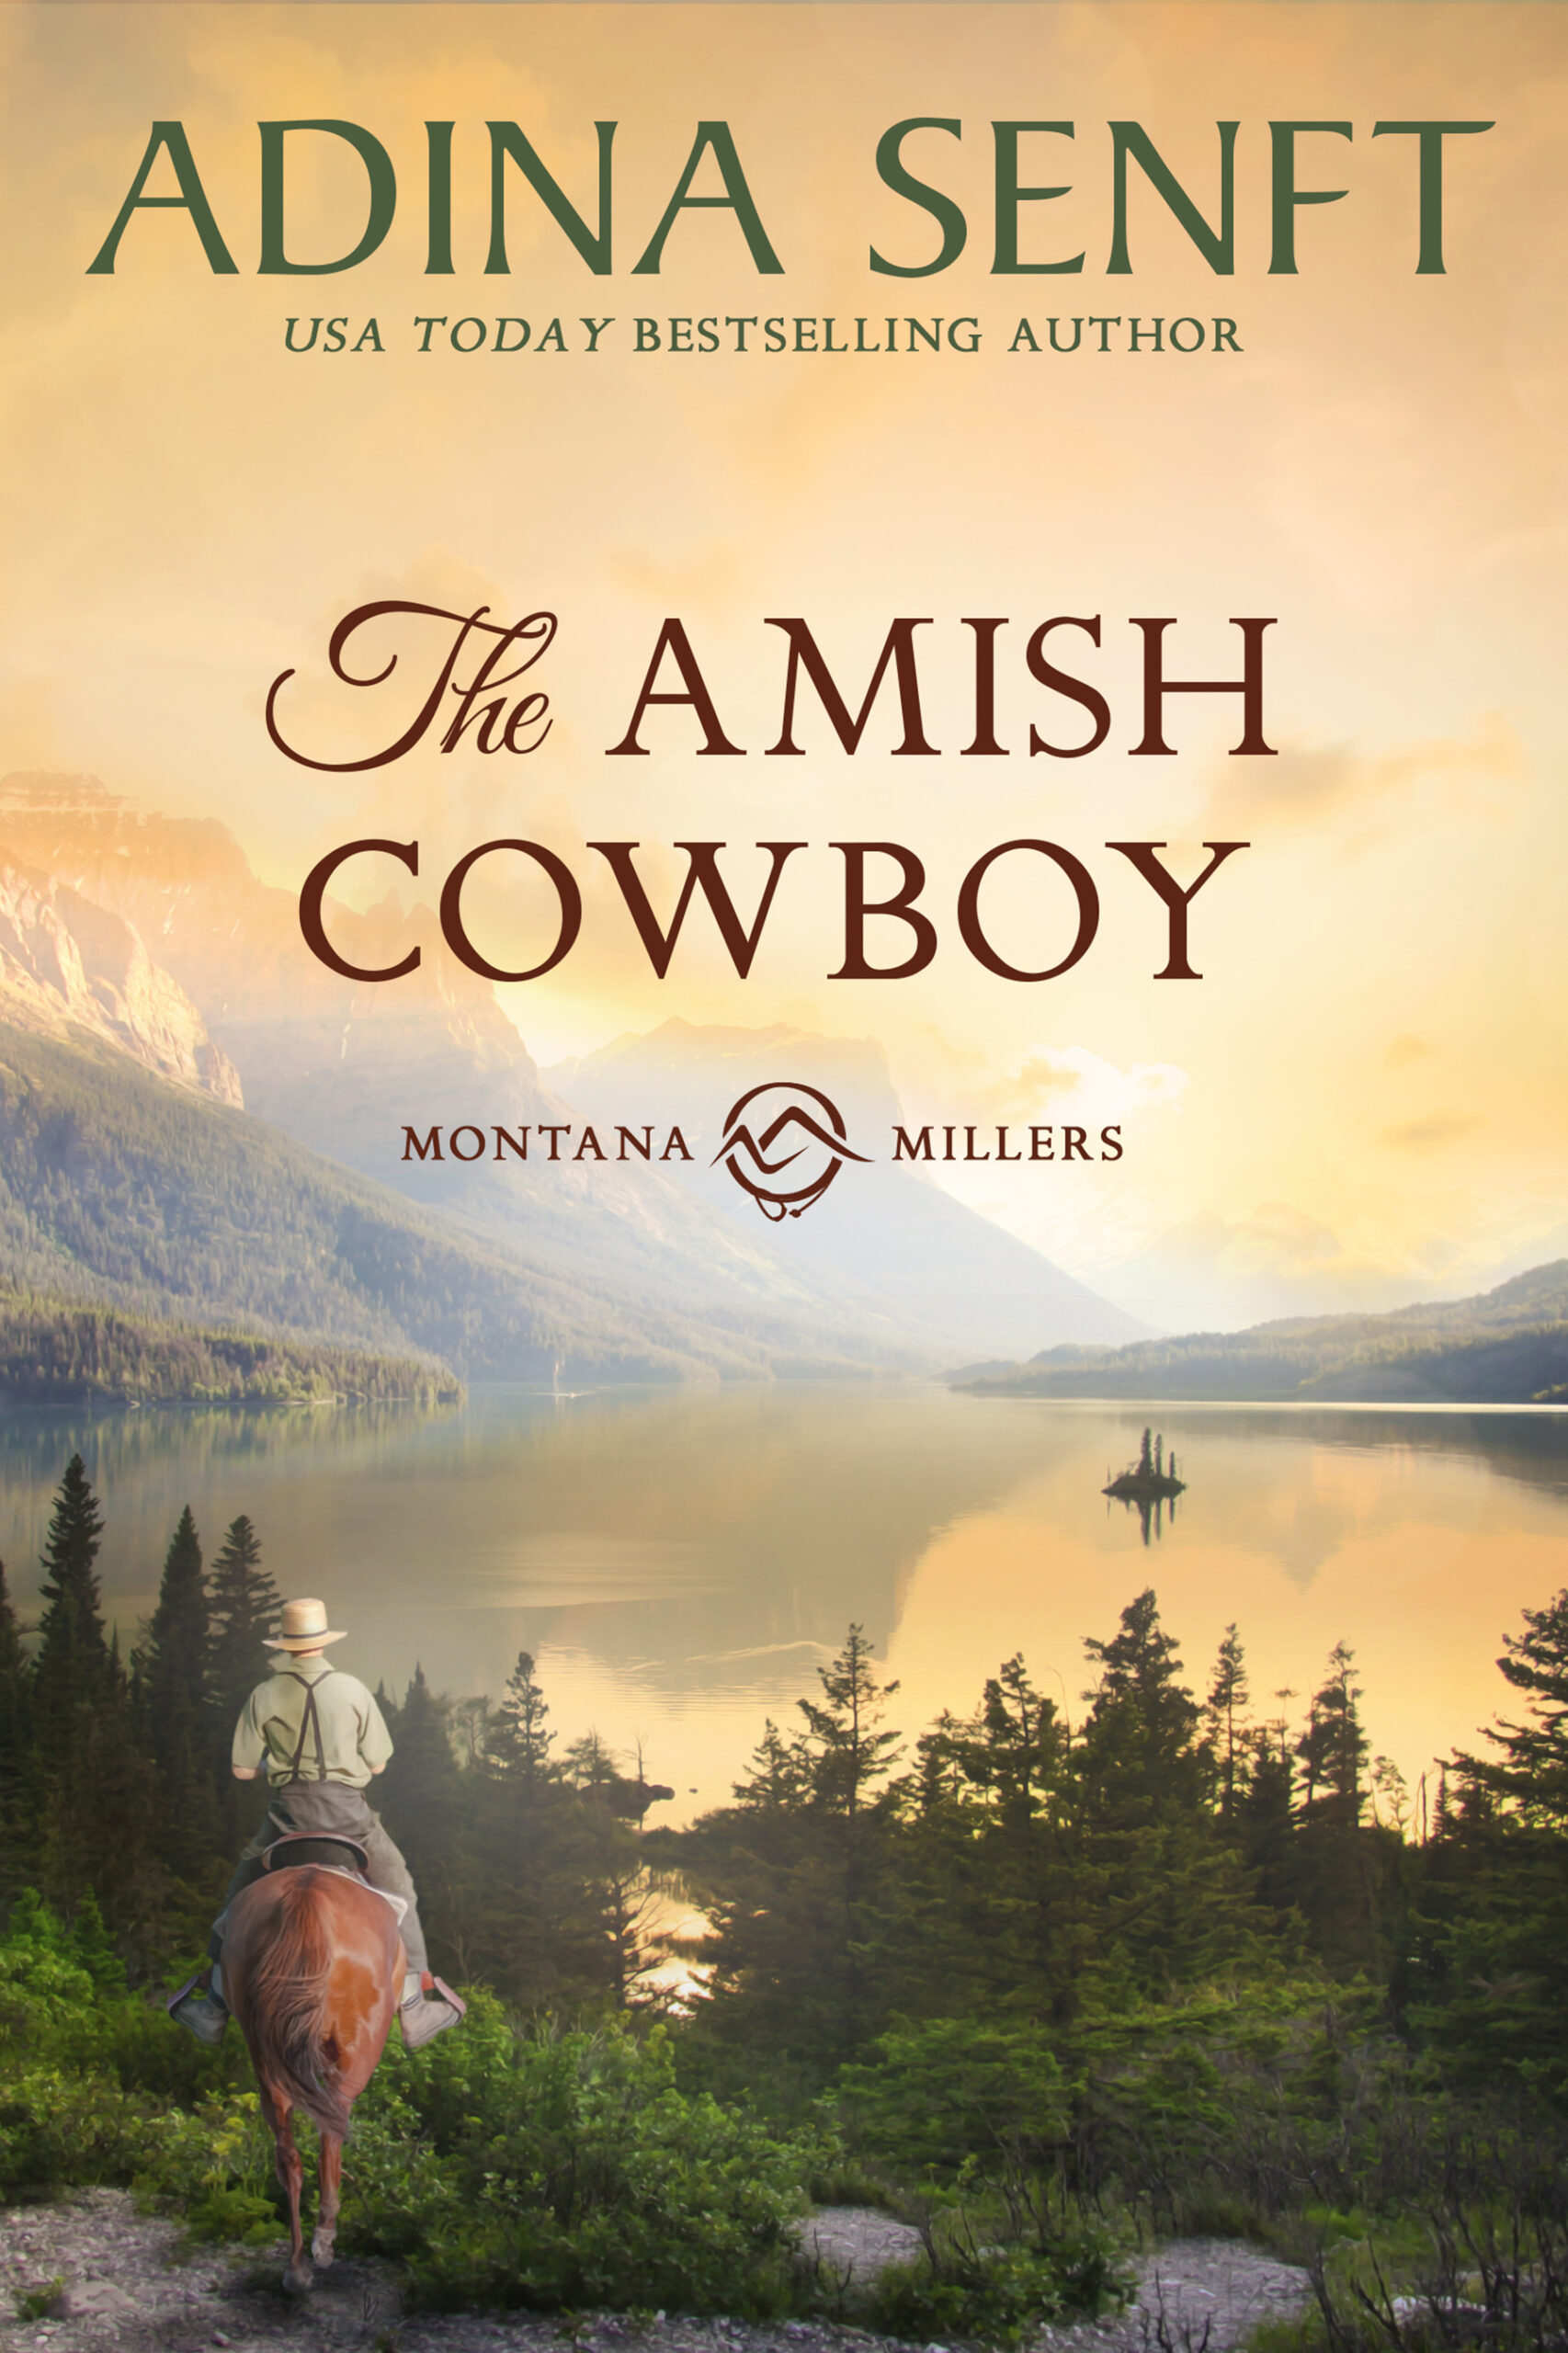 The Amish Cowboy by Adina Senft